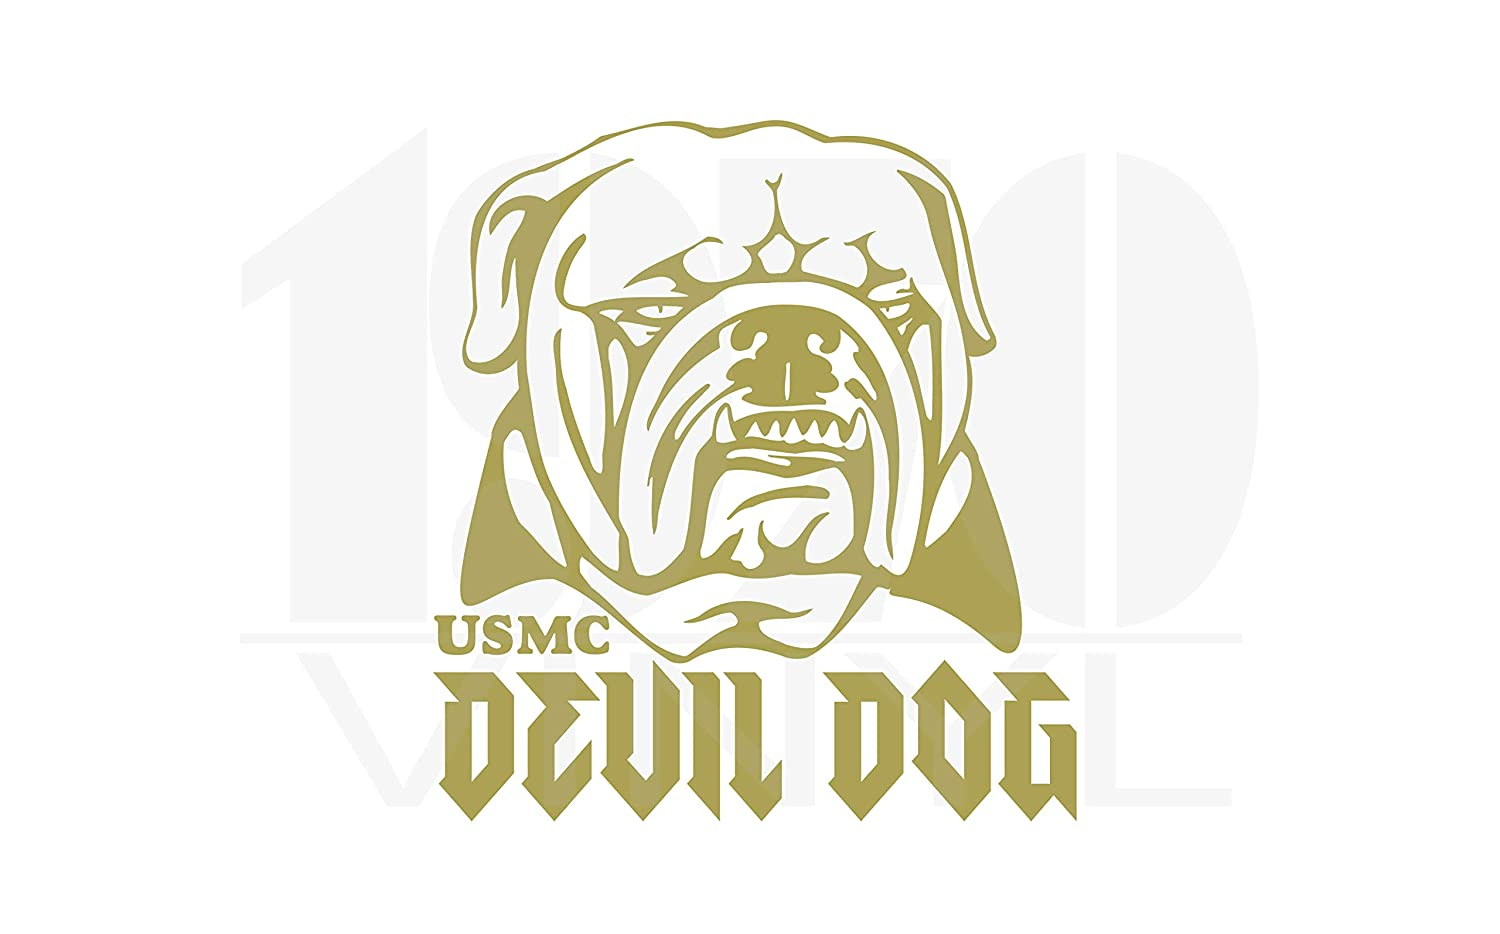 Semper Fi USMC Devil Dog Vinyl Decal United States Marine Corps Officially Licensed USMC Hobbyist #19350